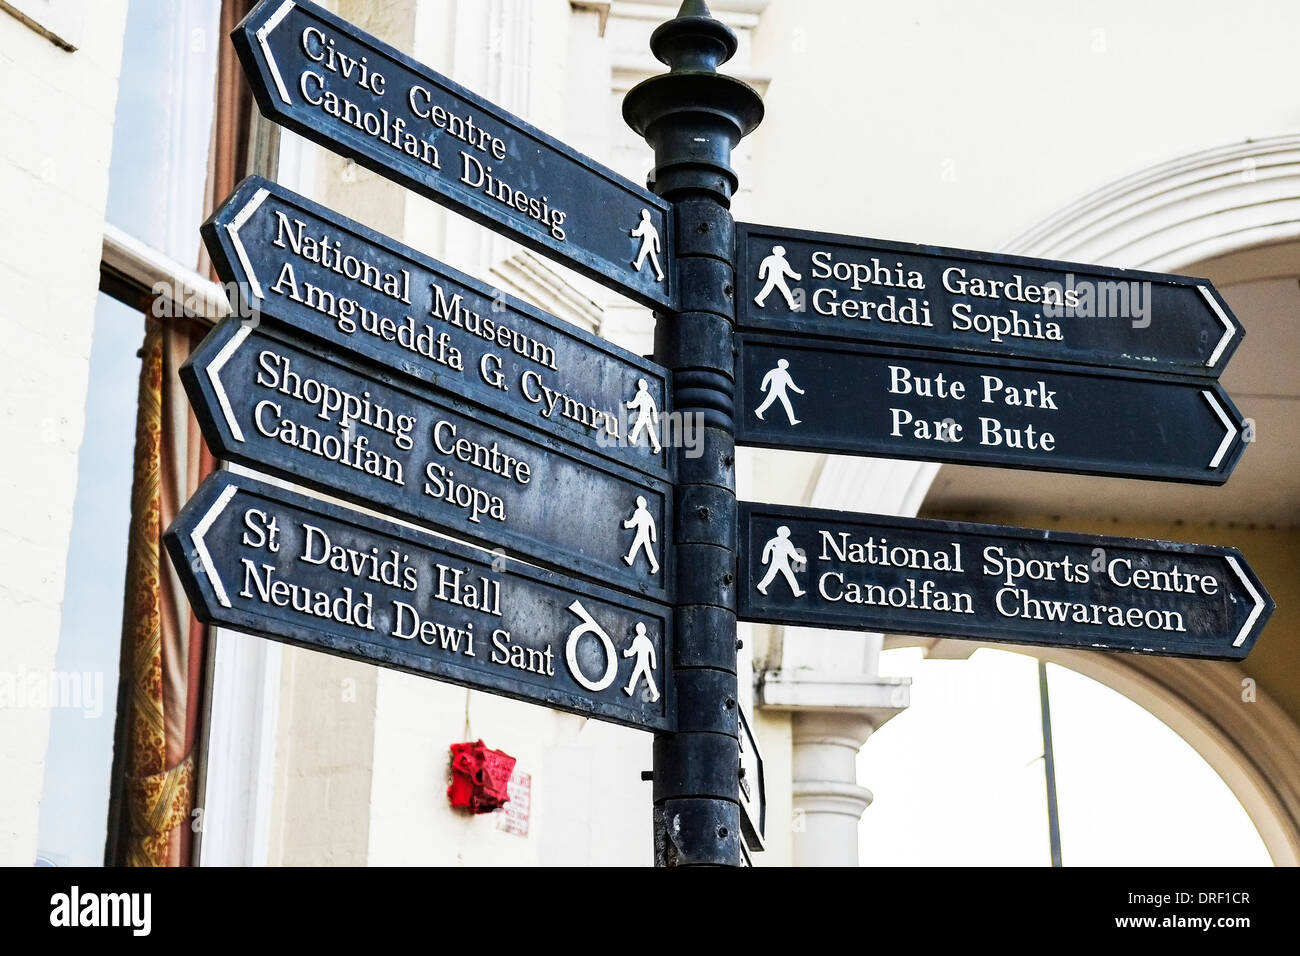 A bi-lingual sign in Cardiff. - Stock Image